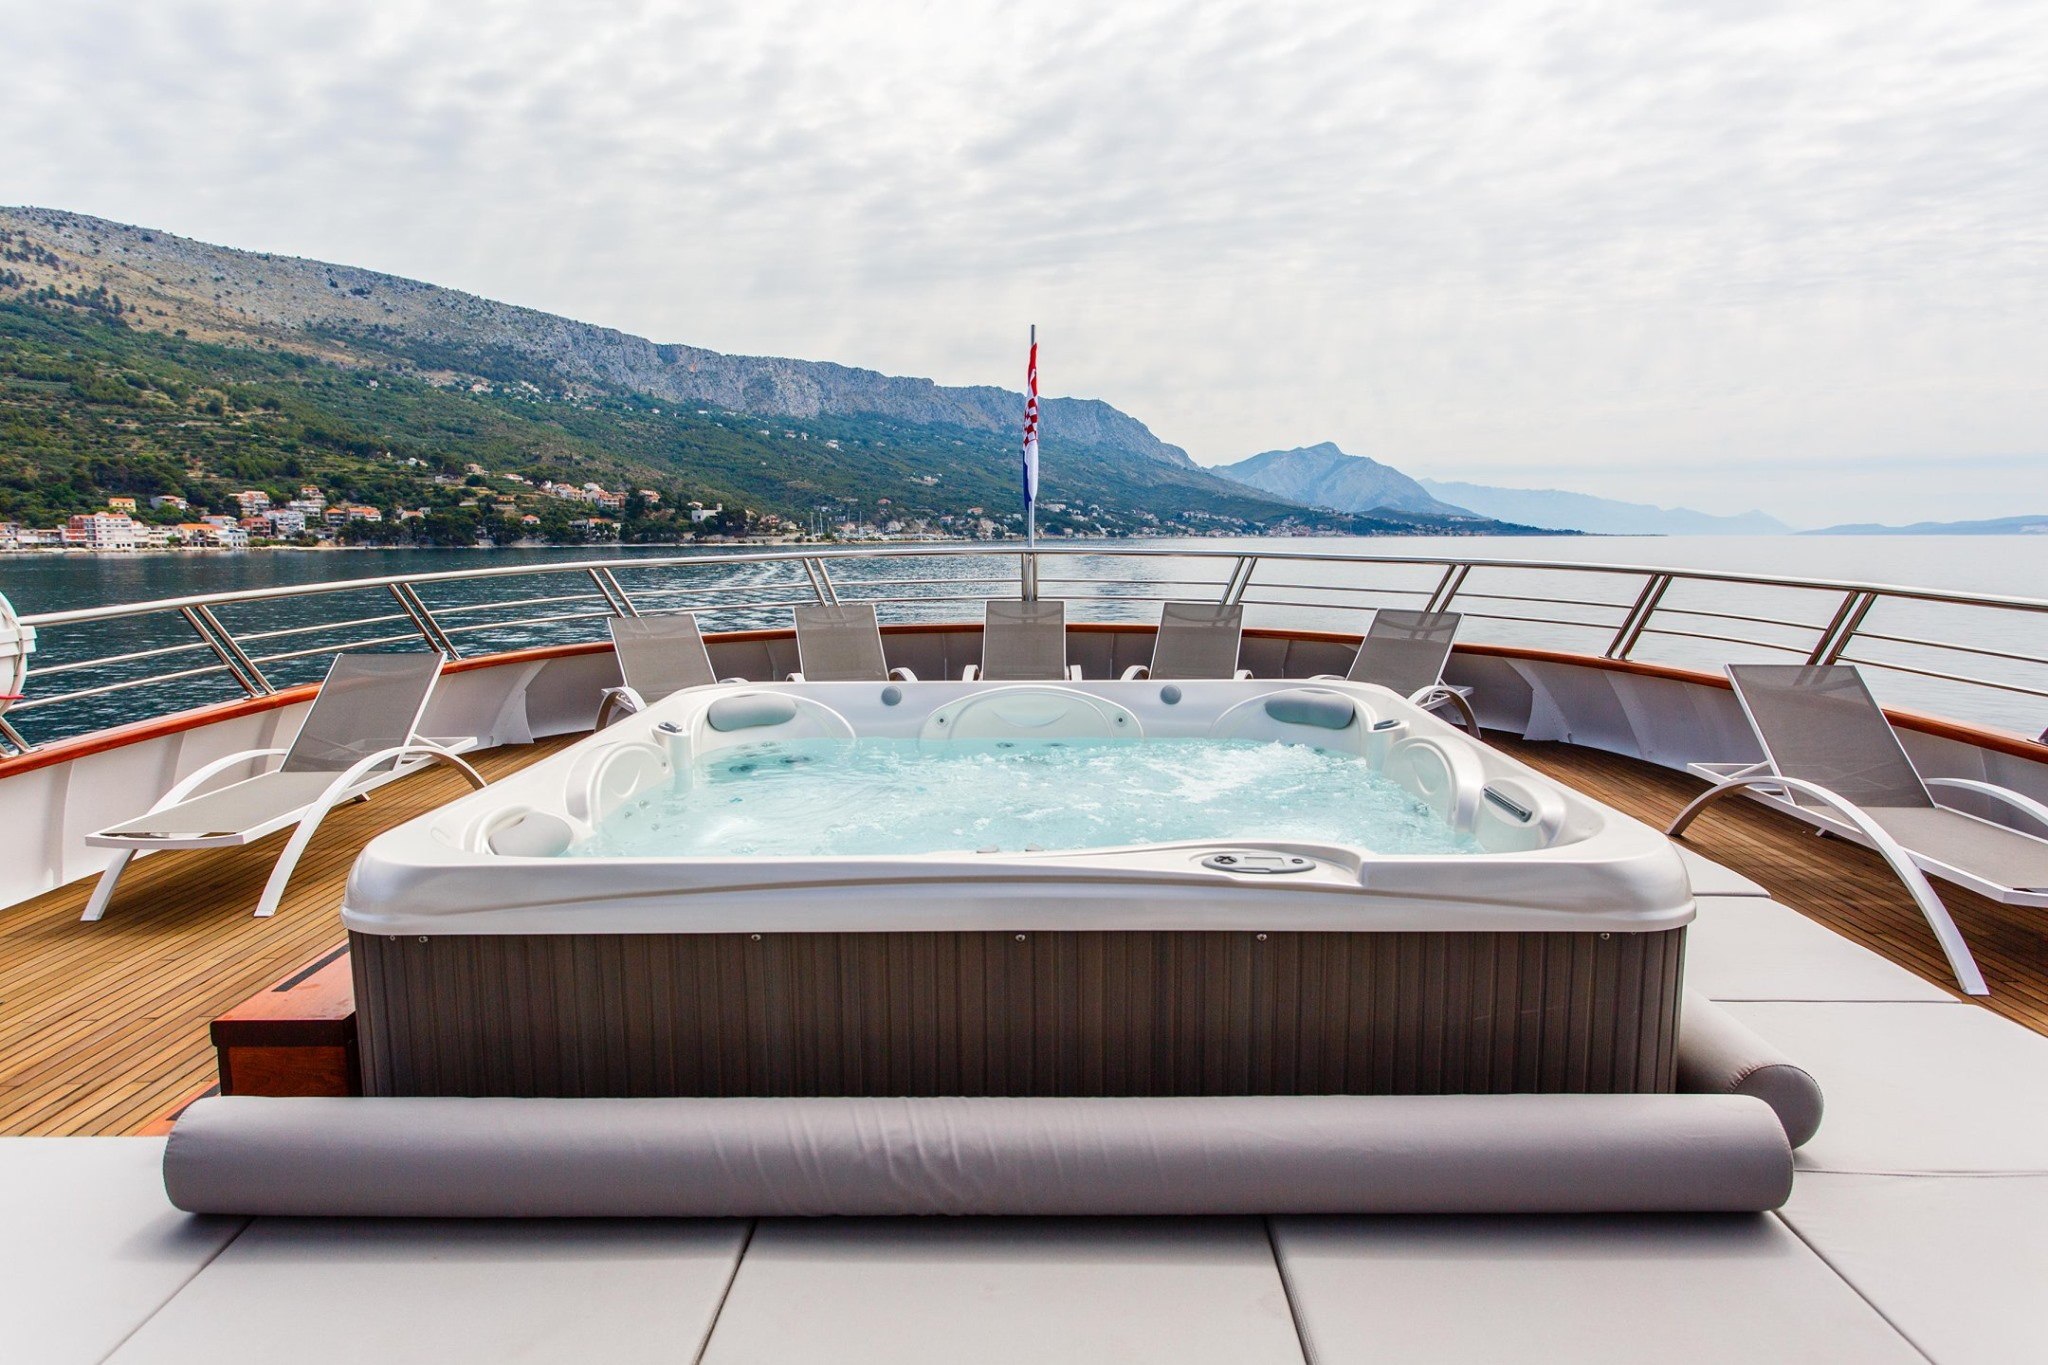 Adriatic Discovery Cruise from Dubrovnik to Split on Ban 7